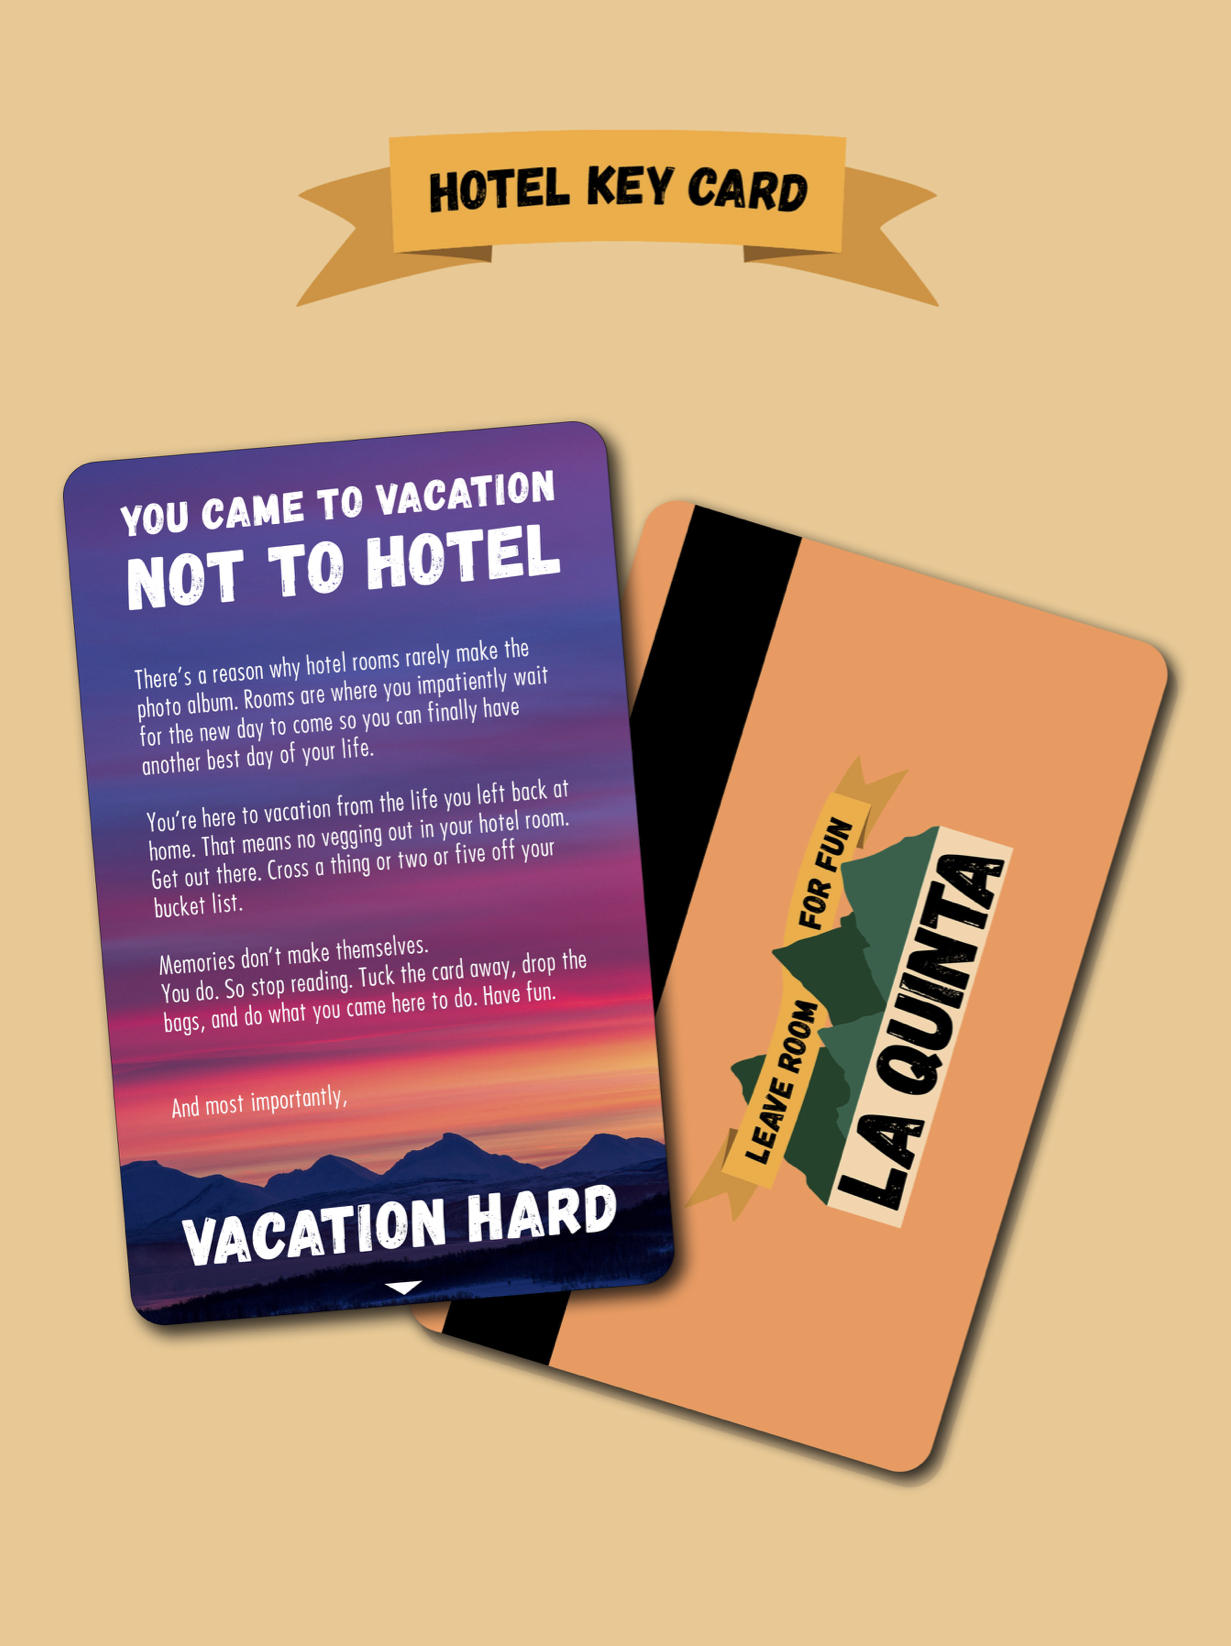 hotel key card – an ad you definitely don't want to lose